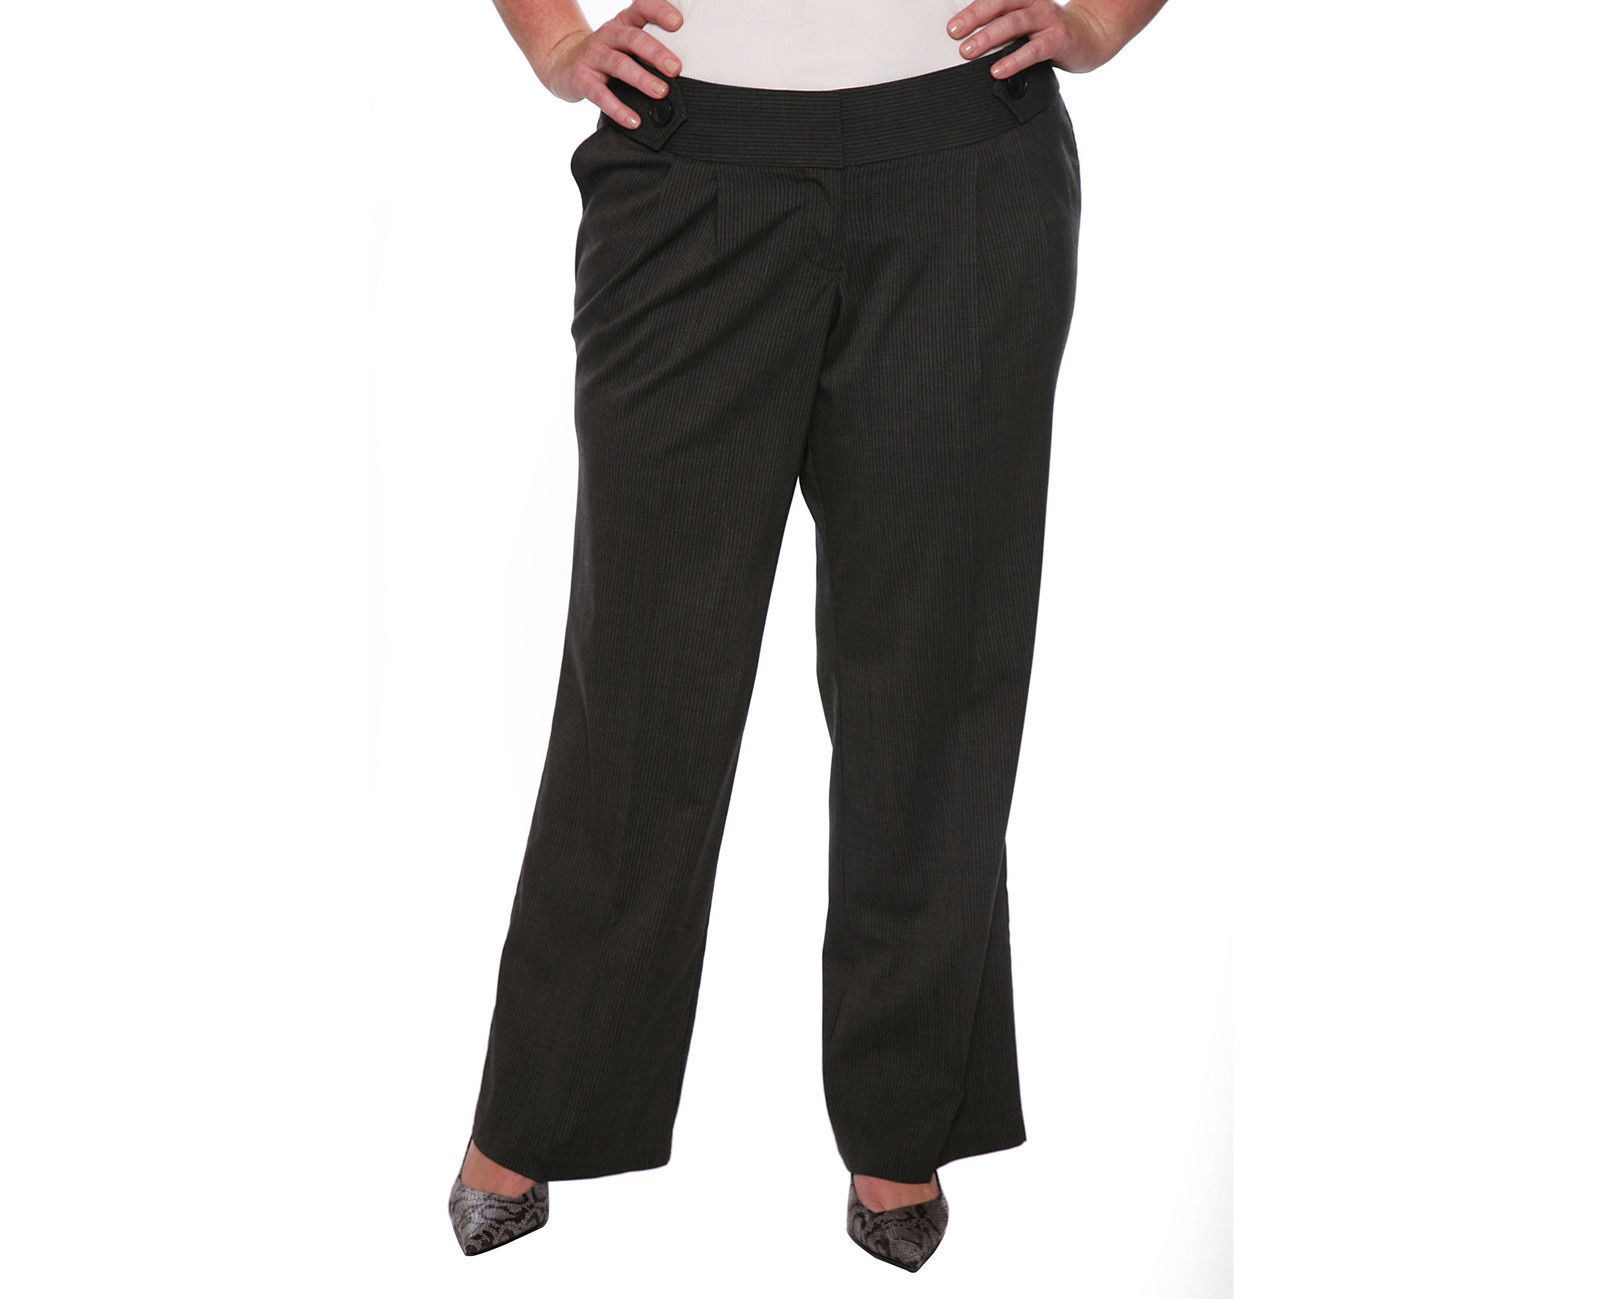 Size 12 Torrid Charcoal Grey with Black Pinstripes Trouser NWOT Career Pants - $35.08